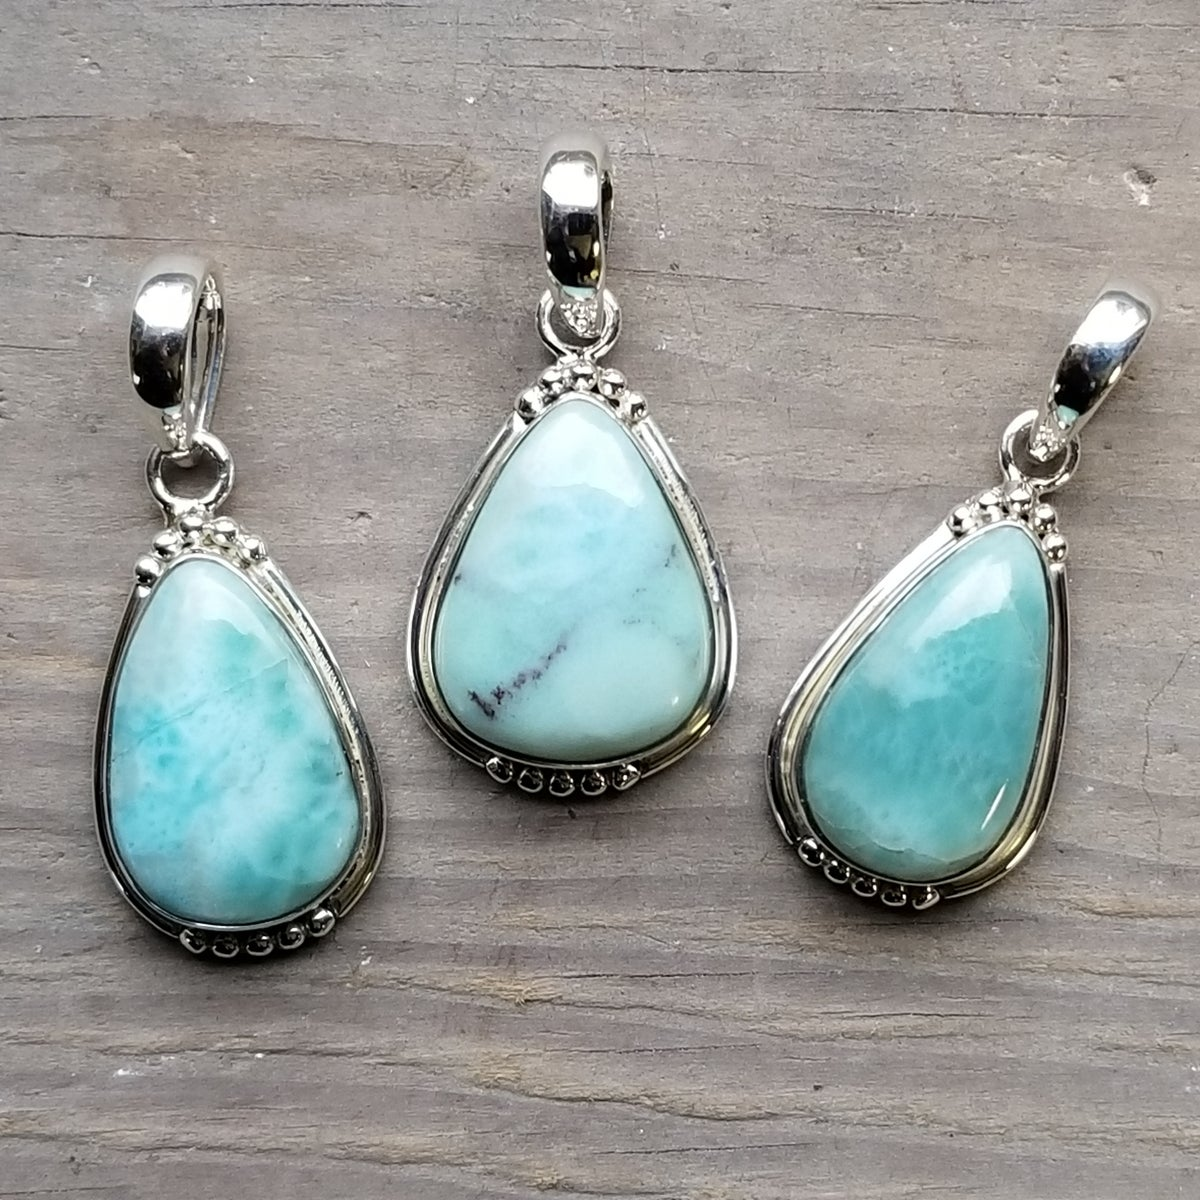 Image of Sweet Simplicity Pendants - Larimar in Sterling